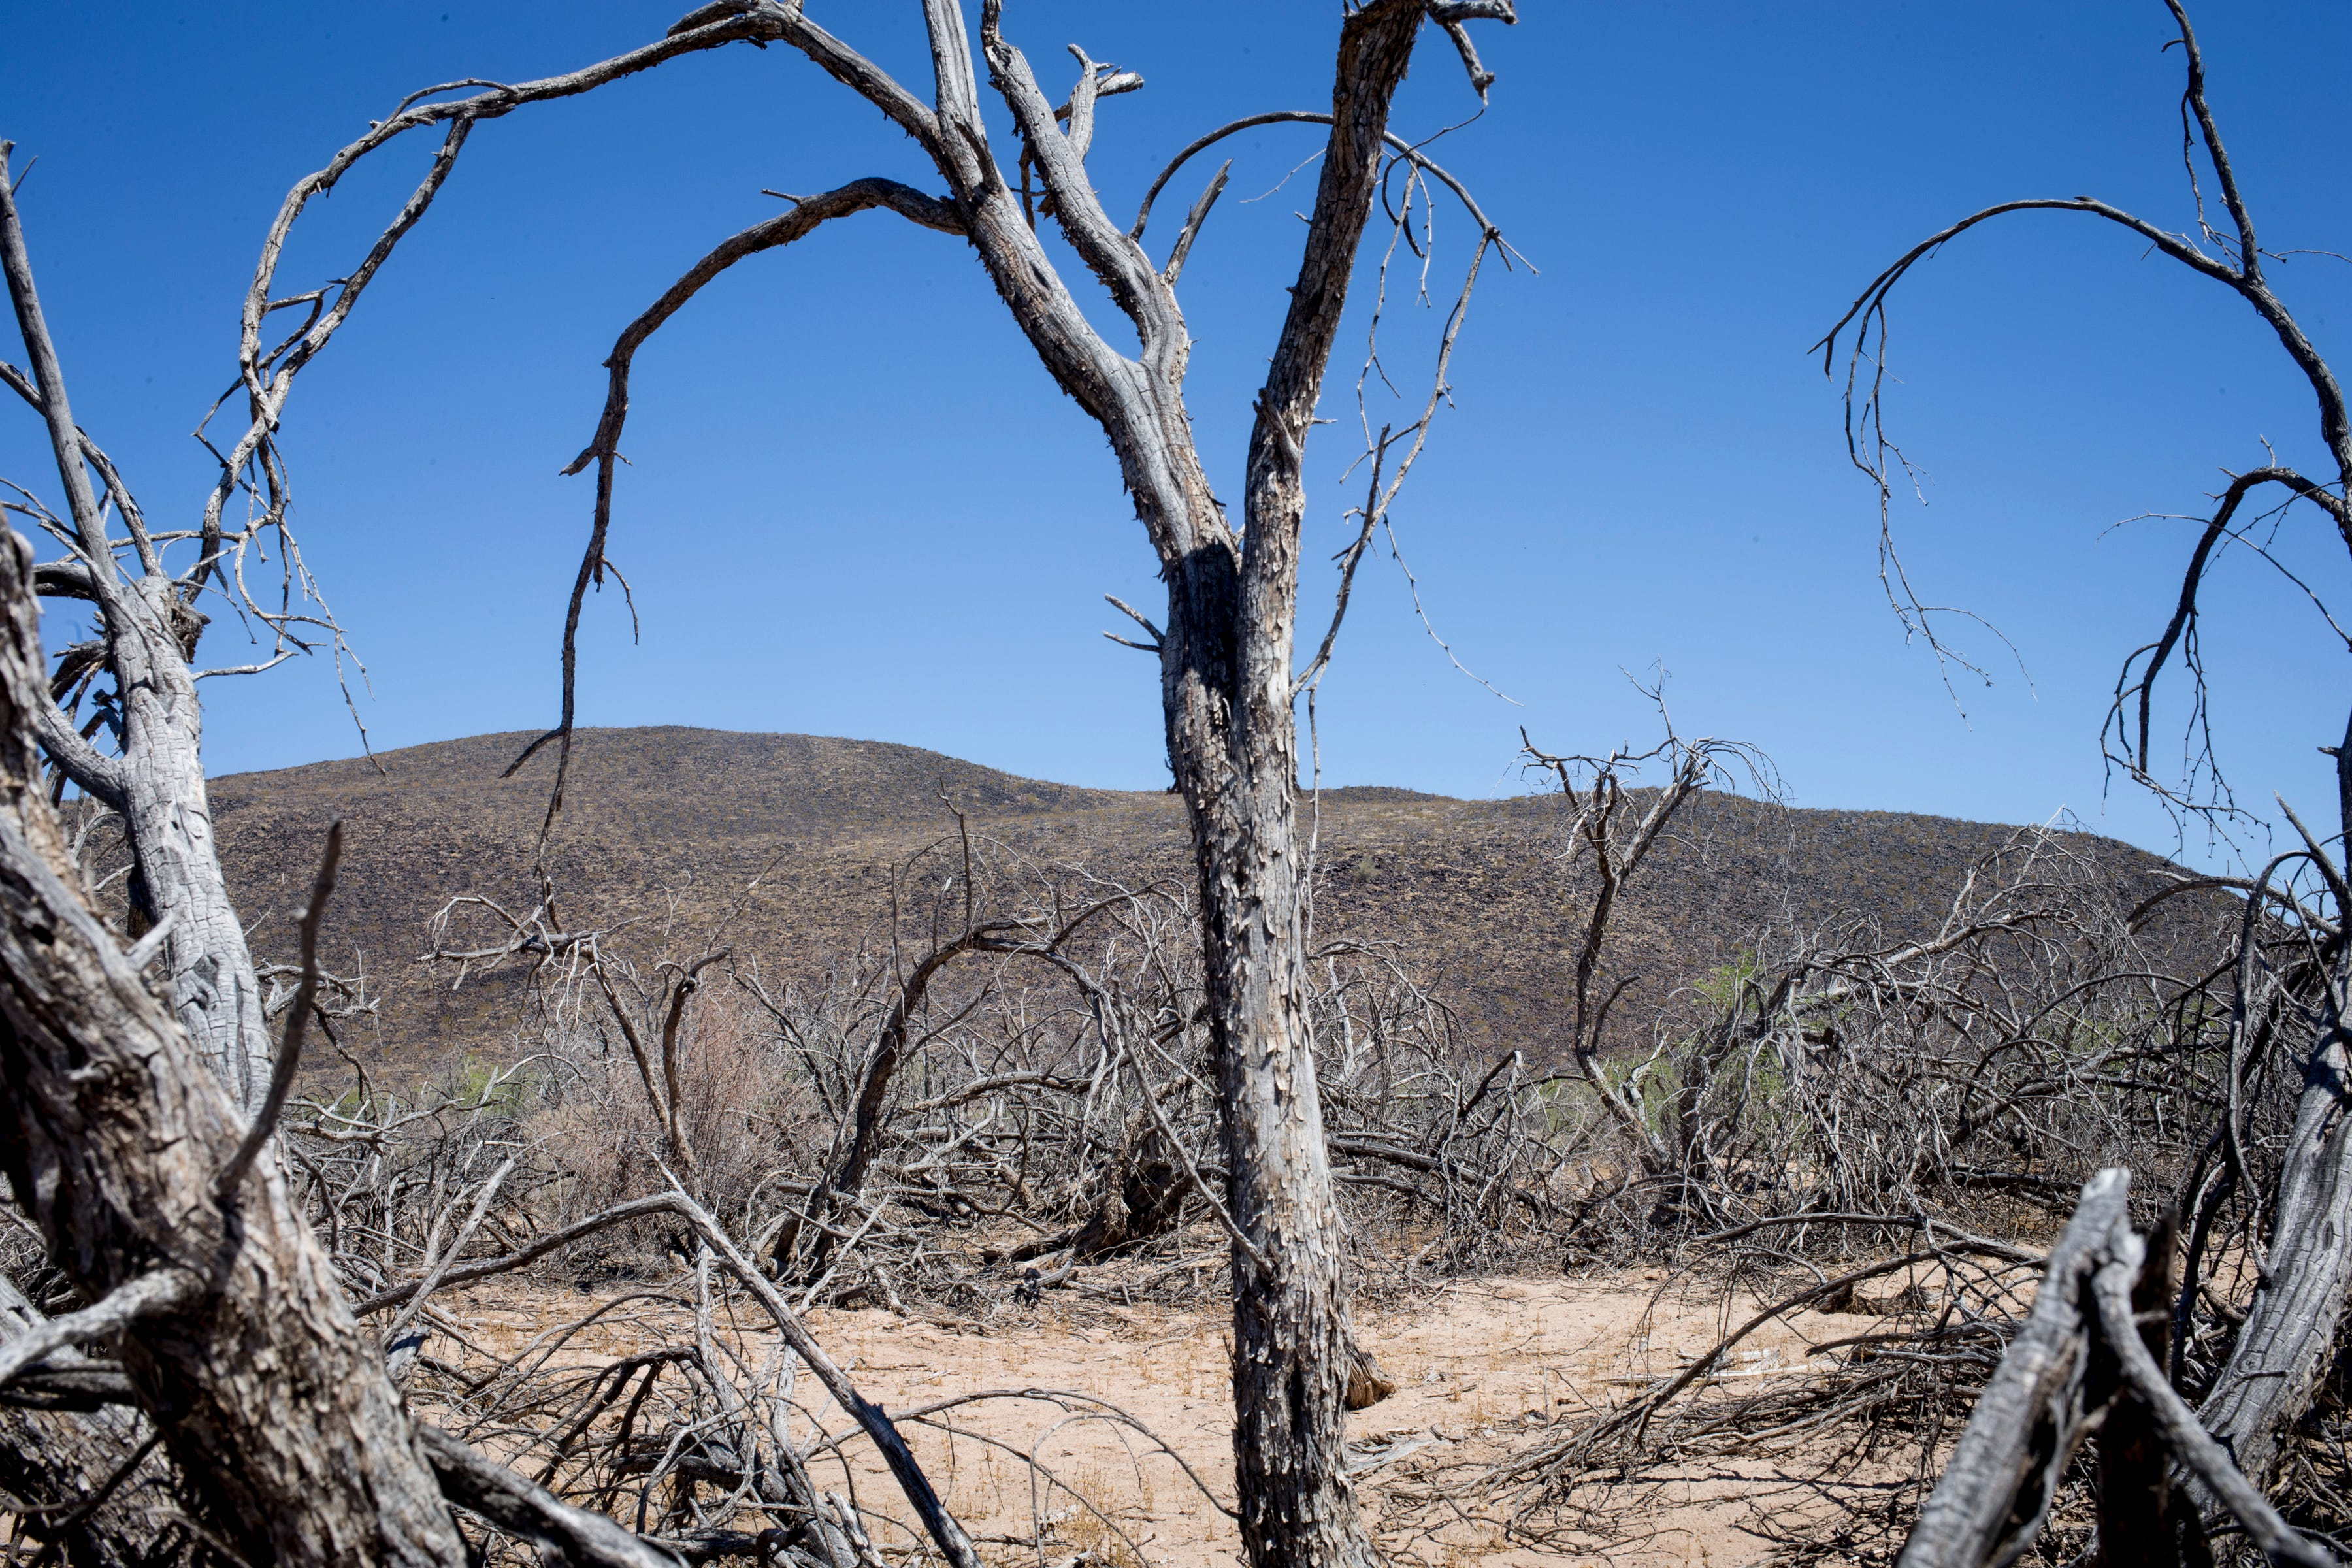 Dead mesquite trees line Old Agua Caliente Road near Hyder, where a hot spring dried up decades ago.